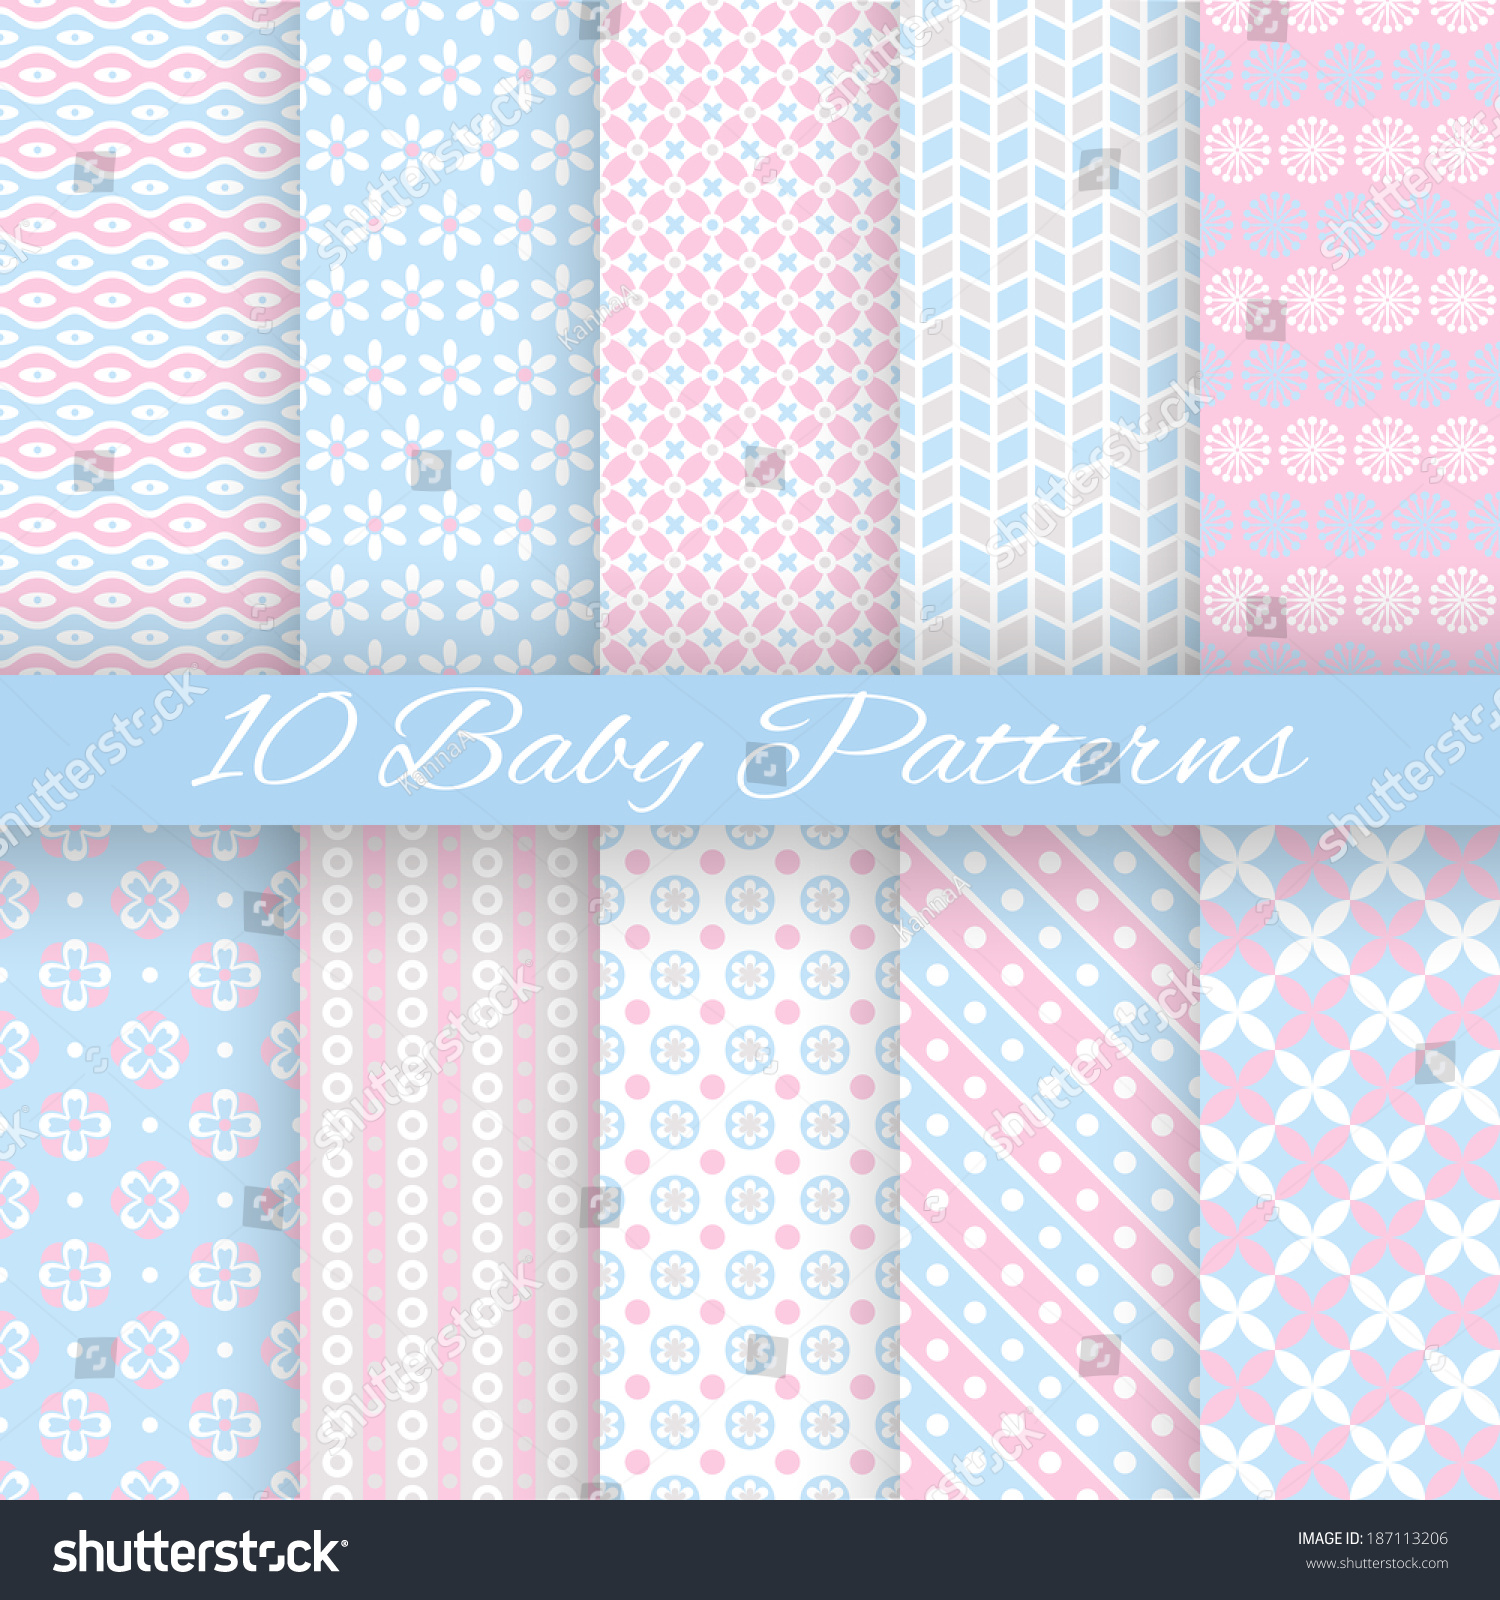 10 Baby Pastel Different Vector Seamless Patterns Tiling Endless Texture Can Be Used